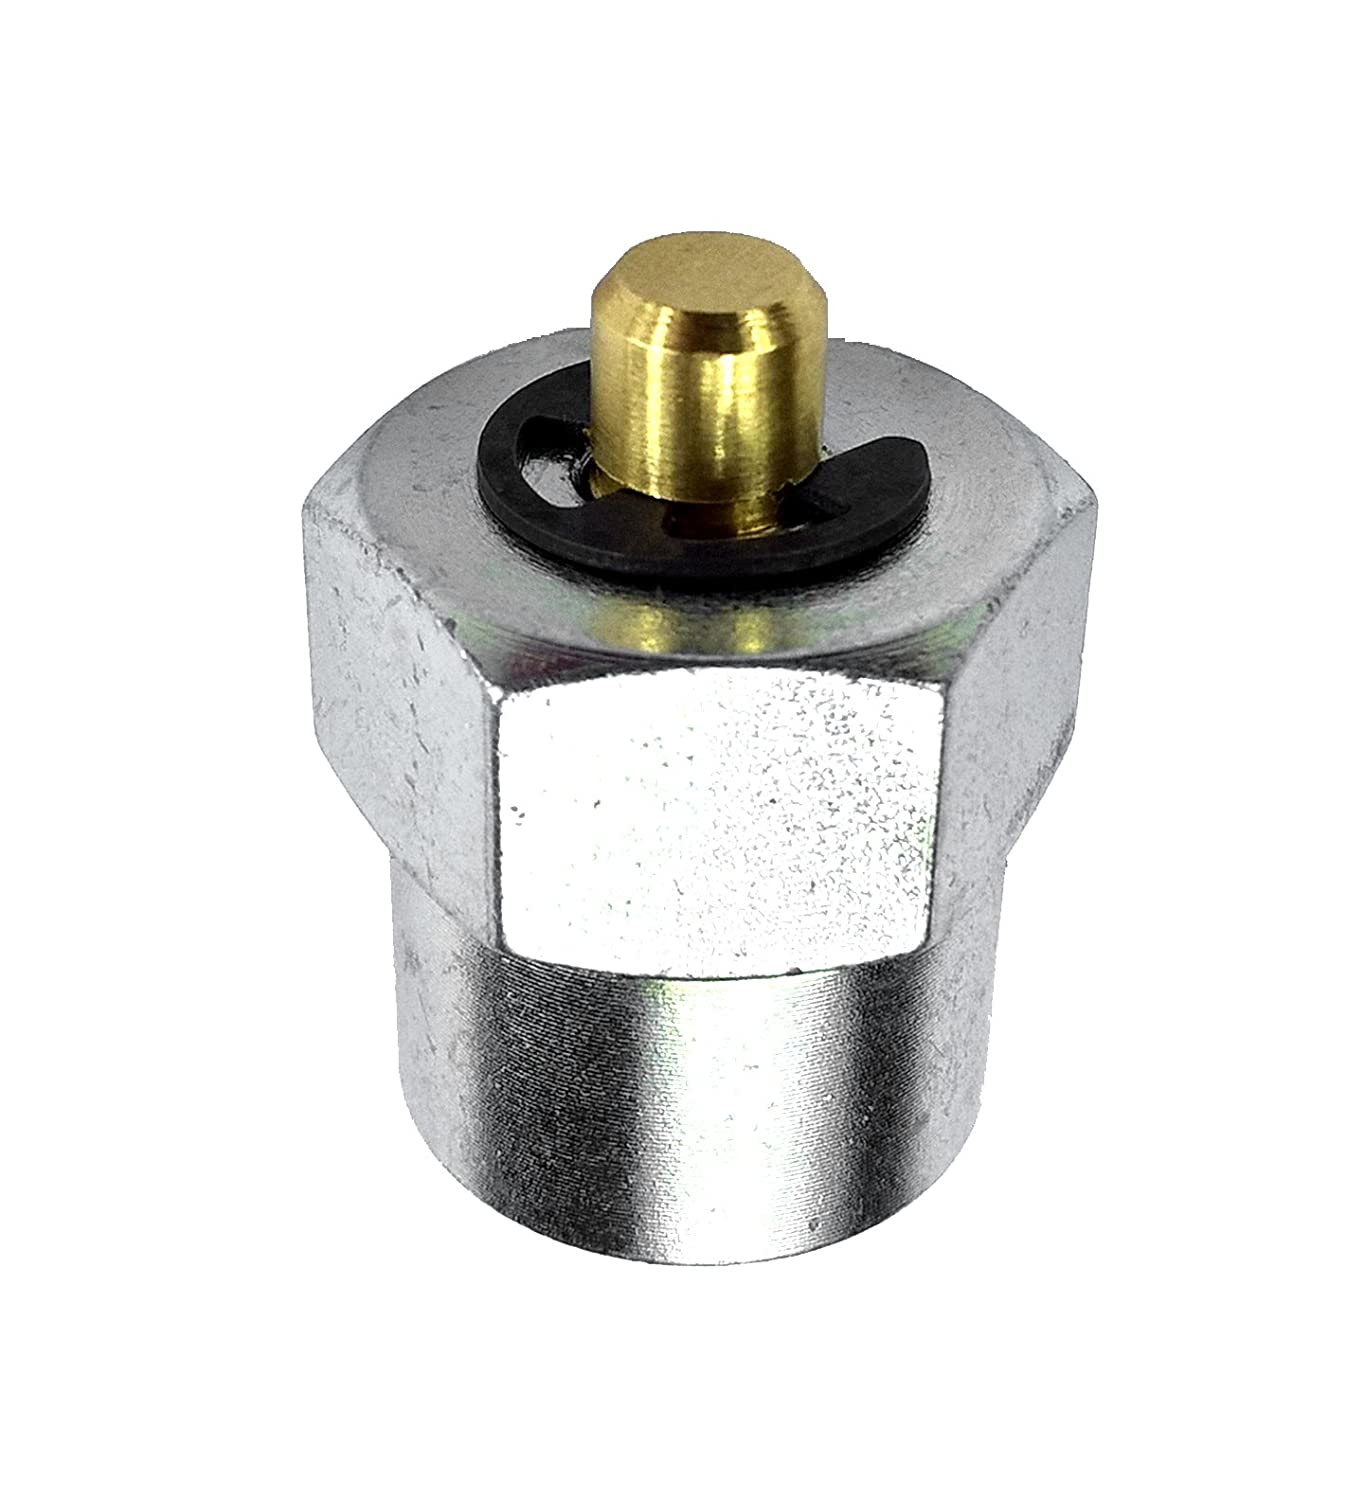 TamerX 14mm Diesel Fuel Injector Cap / Block-Off Tool for 5 9L  Dodge/Cummins (Individual)